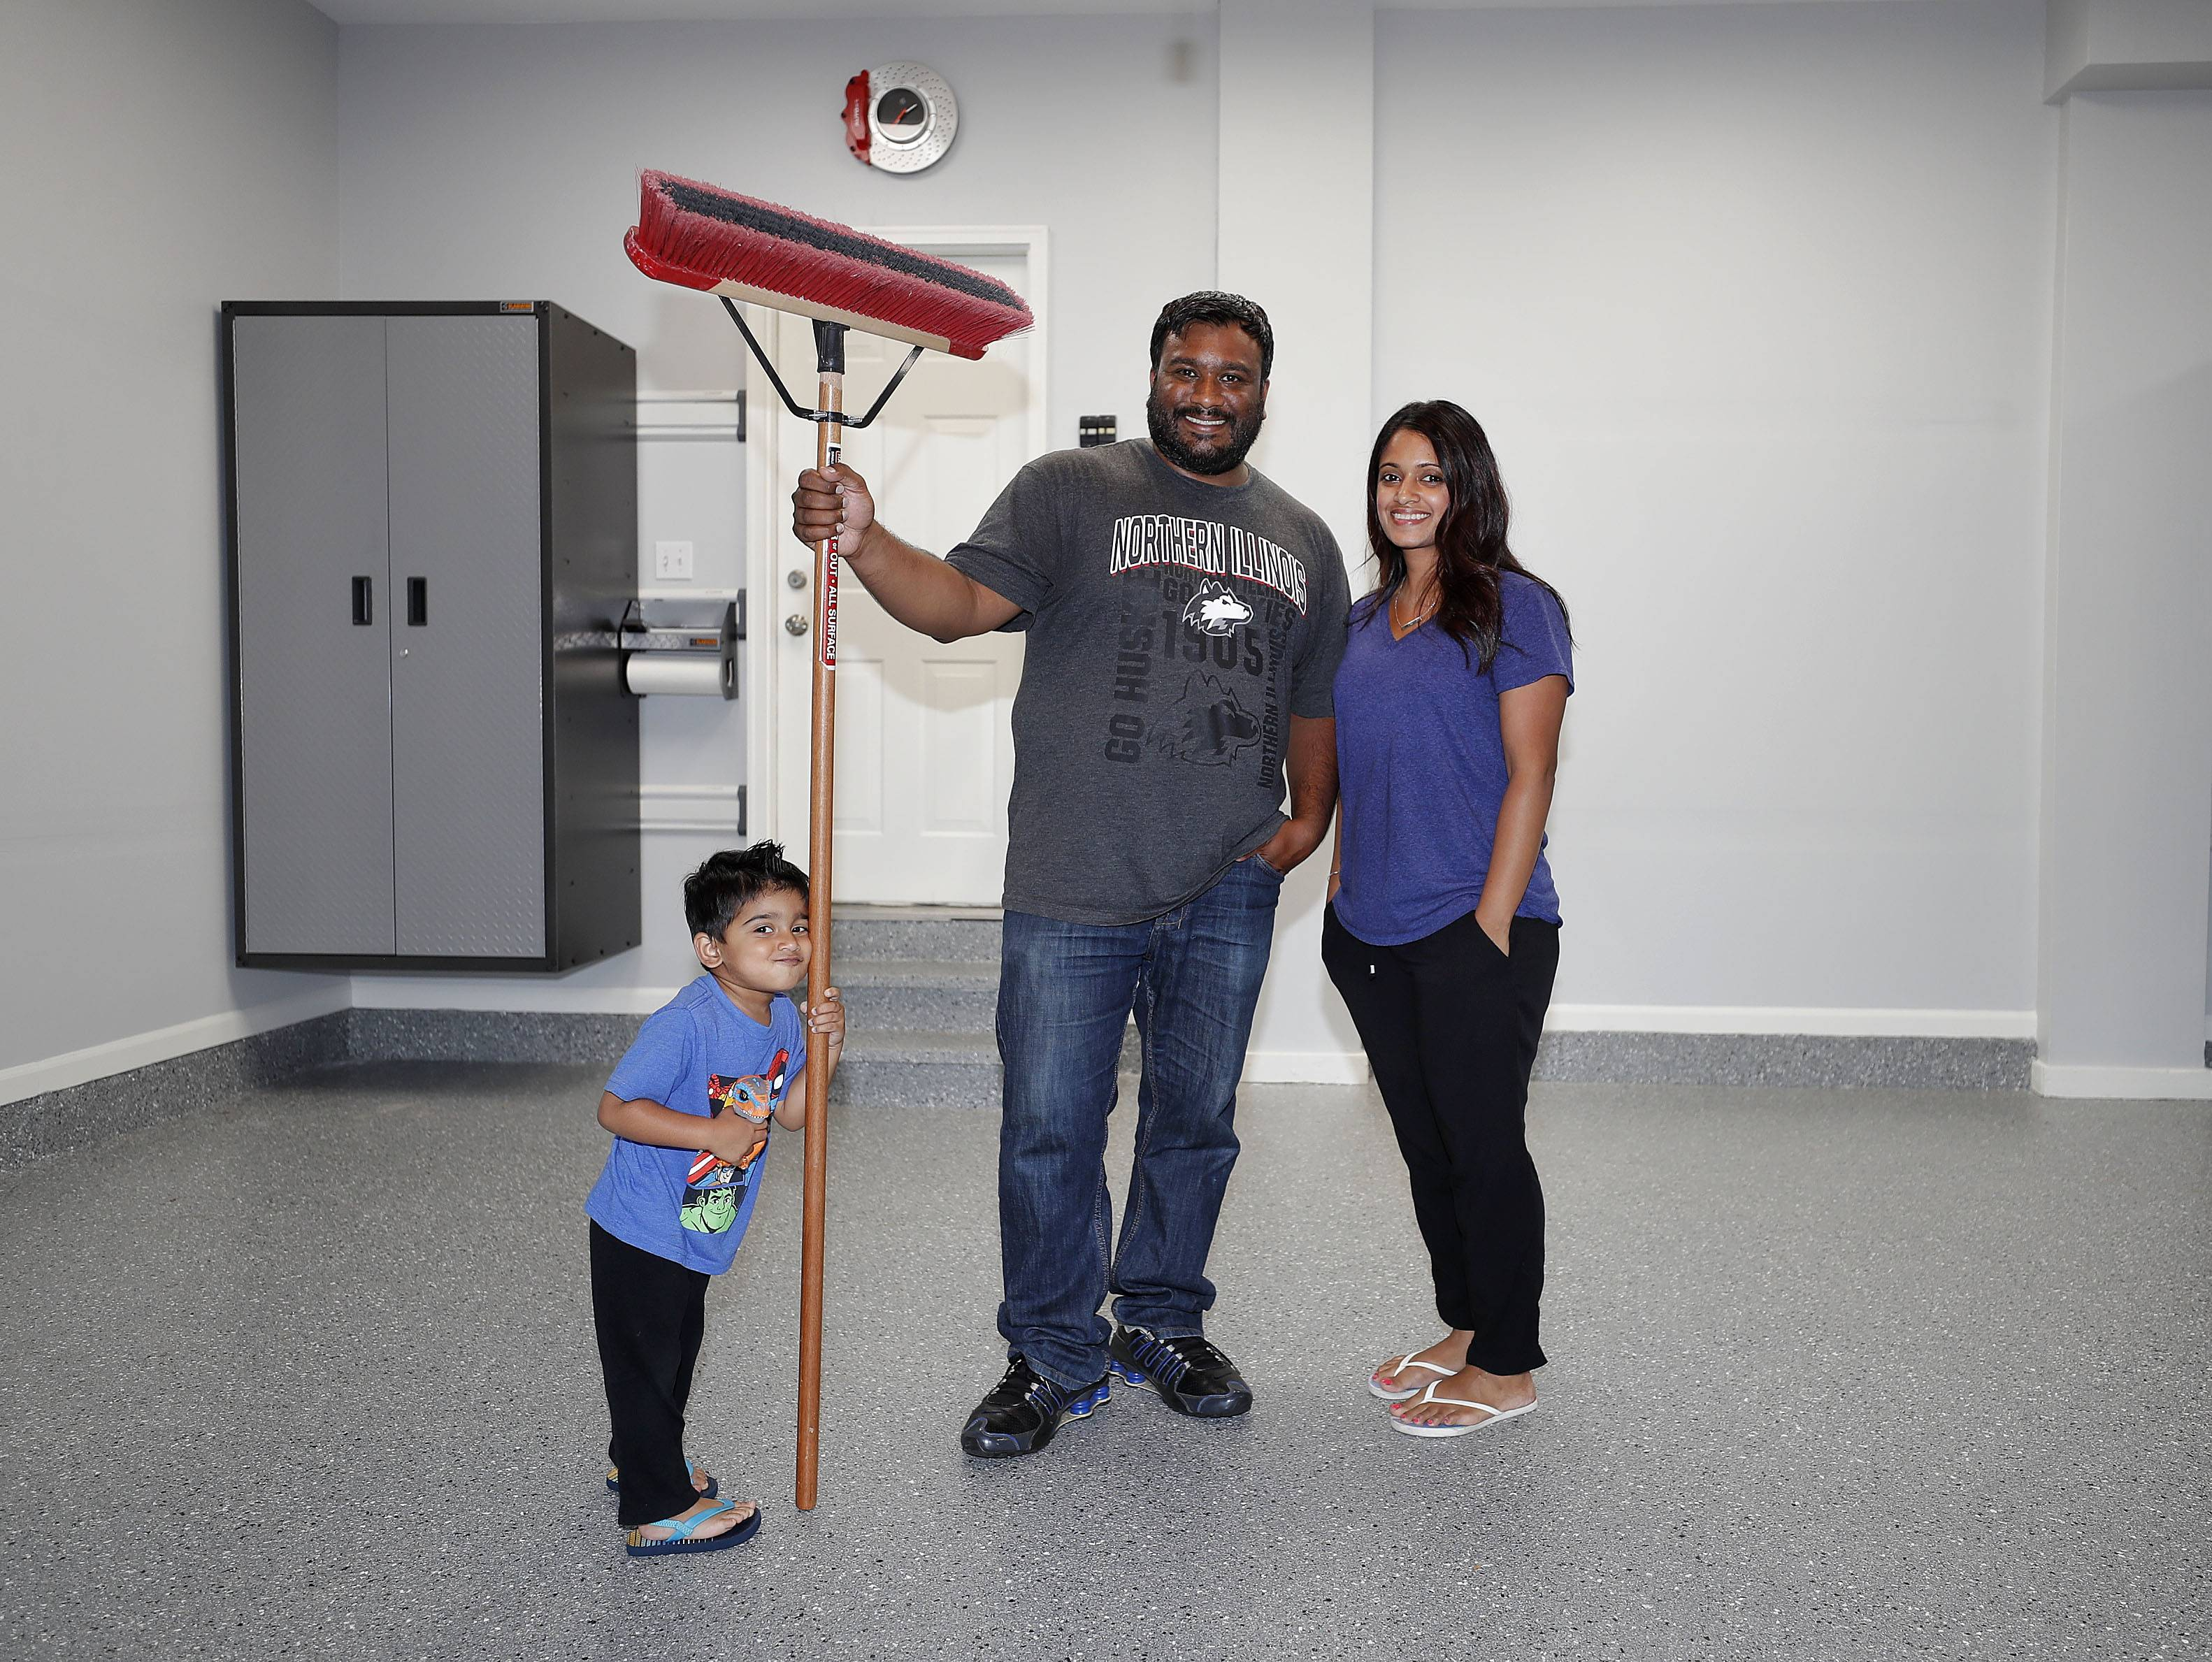 Matt Joseph of Vernon Hills poses with his wife Elena, right, and 3-year-old son Isaac in their newly renovated garage. Joseph won a garage makeover sponsored by the Garage Store and Daily Herald.